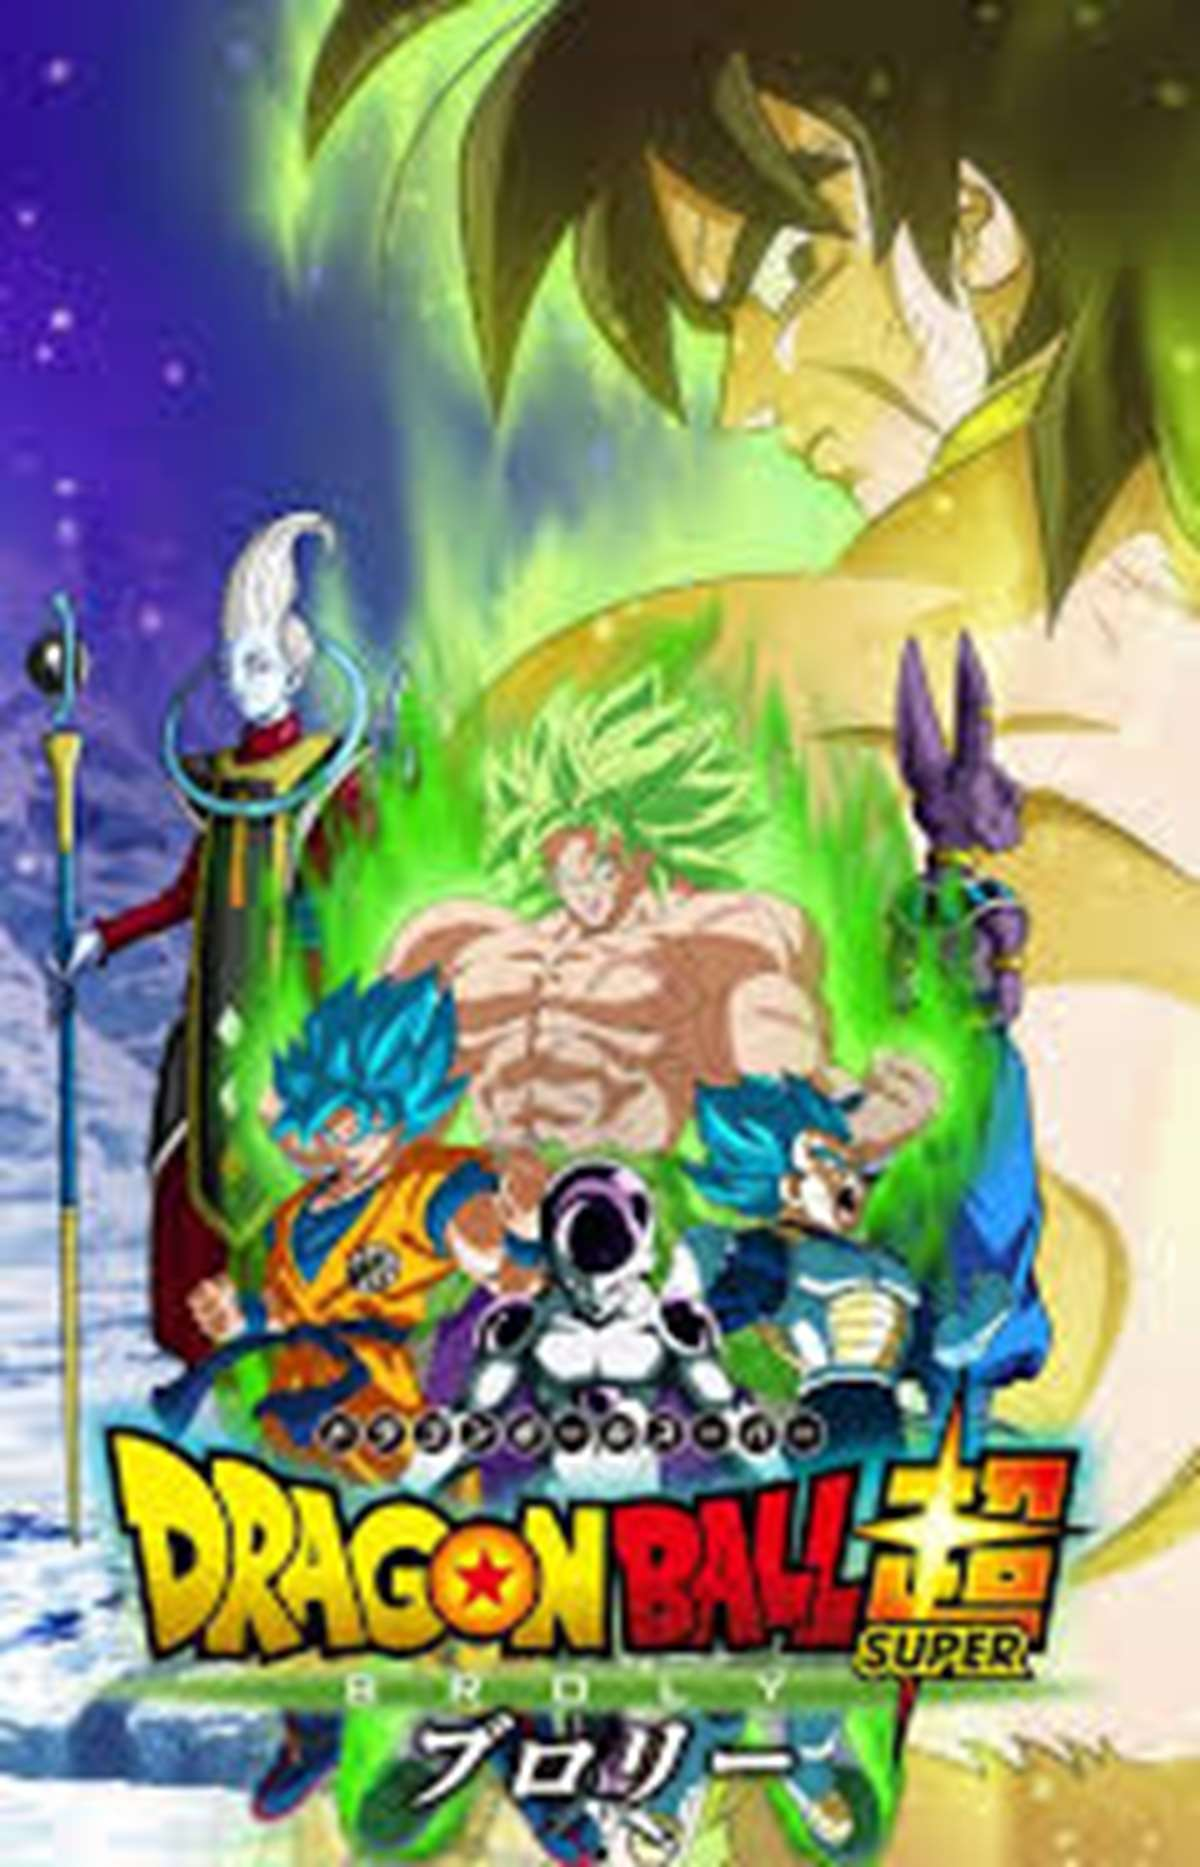 Dragon Ball Super: Broly continúa arrasando en taquilla.